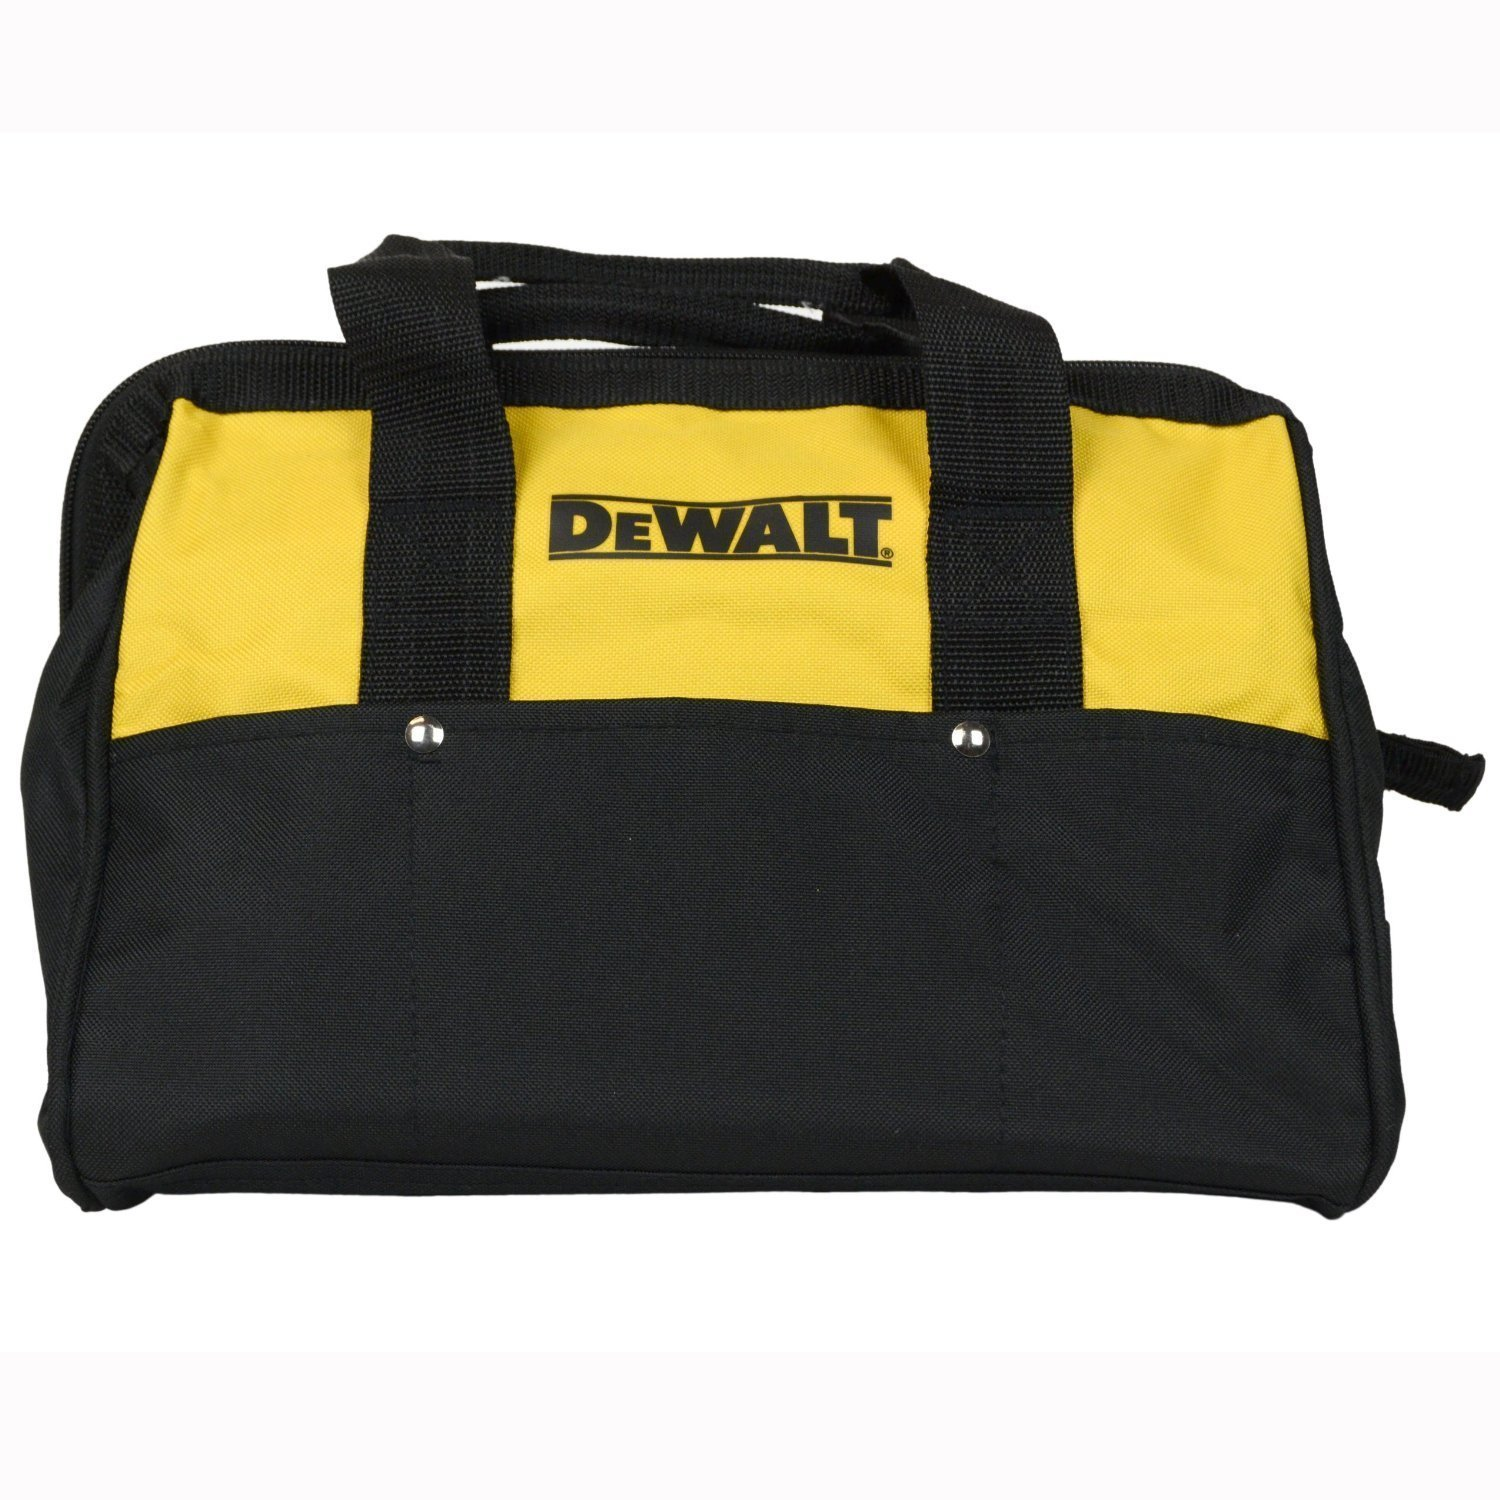 Dewalt 13'' Mini Heavy Duty Contractor Tool Bag